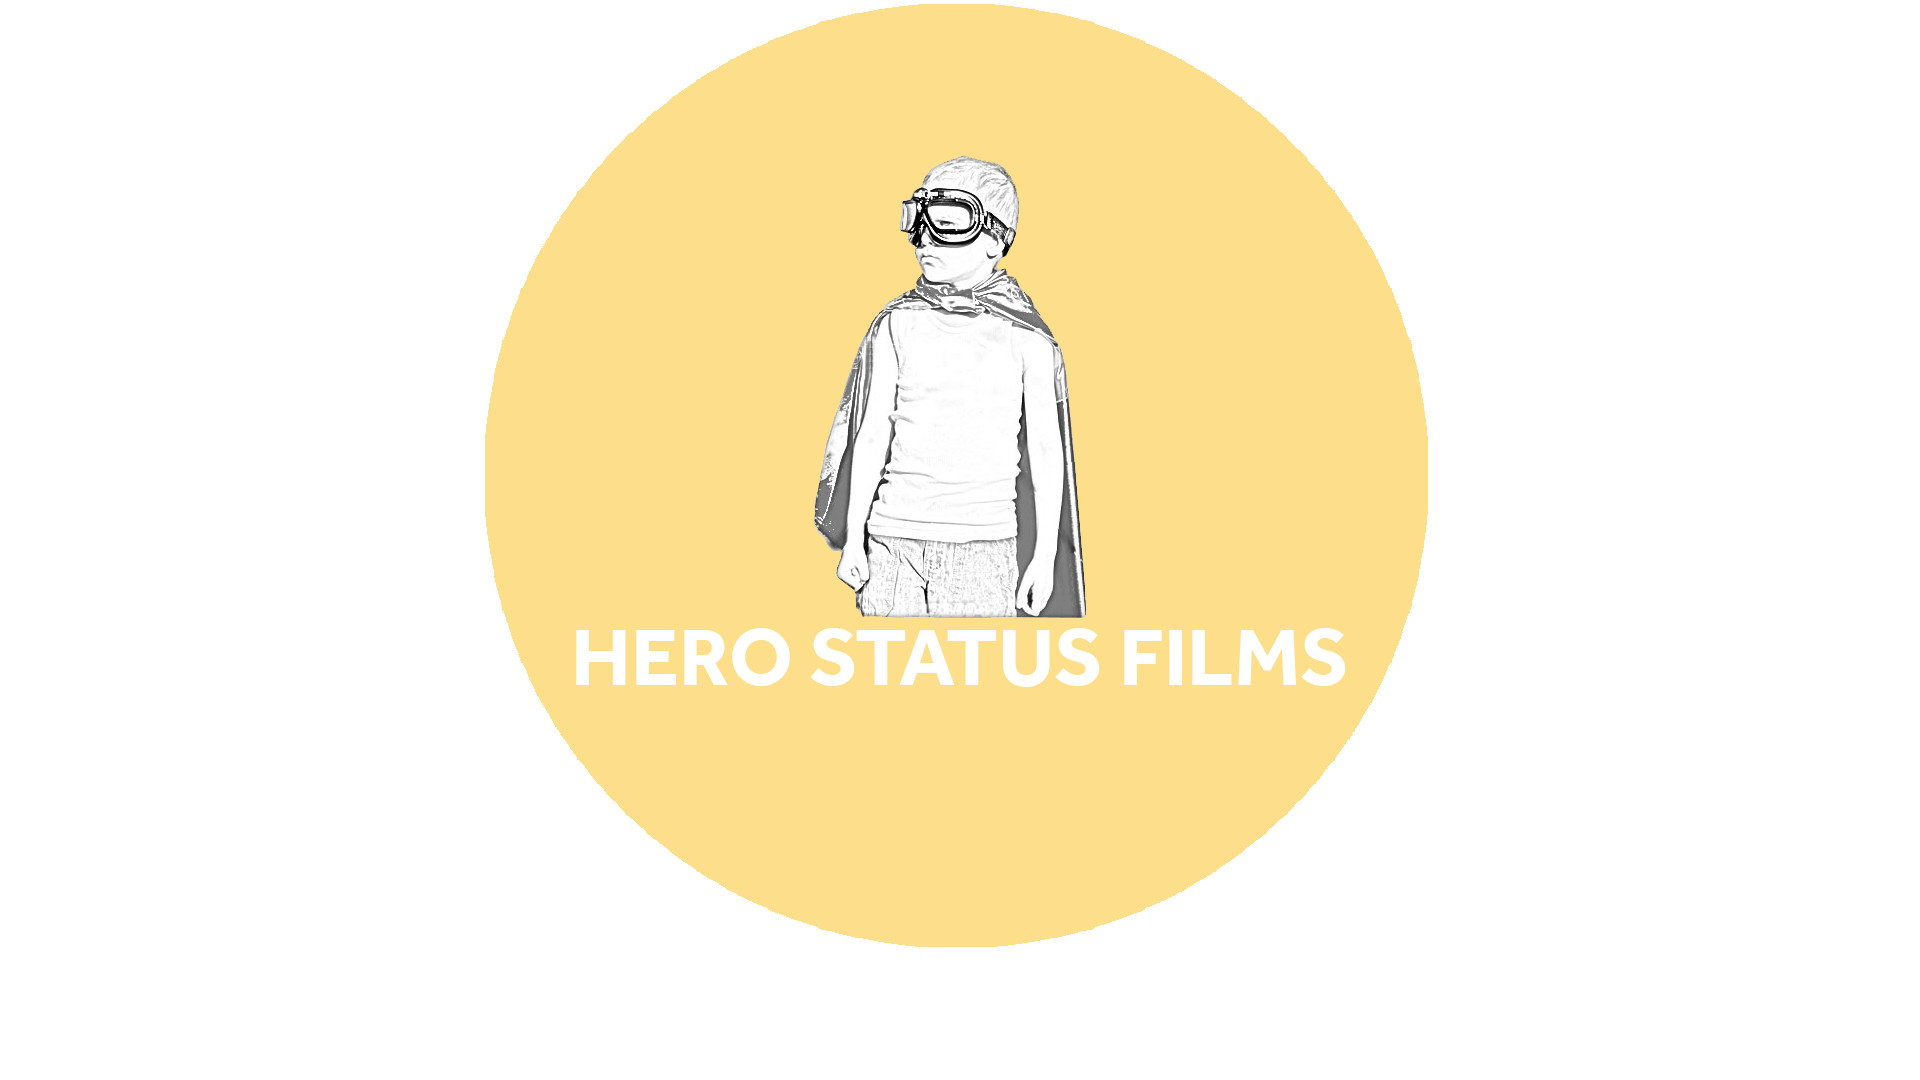 Hello - Hero Status Films is an award winning, boutique production company based in Los Angeles. We specialize in branded content on various platforms as well as narrative films. Our work has been shown at Cannes Lions, SXSW, on broadcast television, and virally on the web. We're able to generate content from conception, onto production and all the way through to the finished product. We work with an in-house team of storytellers, copyrighters, camera operators and post-production wizards. We love to tell stories, whether it's to make people laugh, or tug at their heart strings. Let us tell yours.